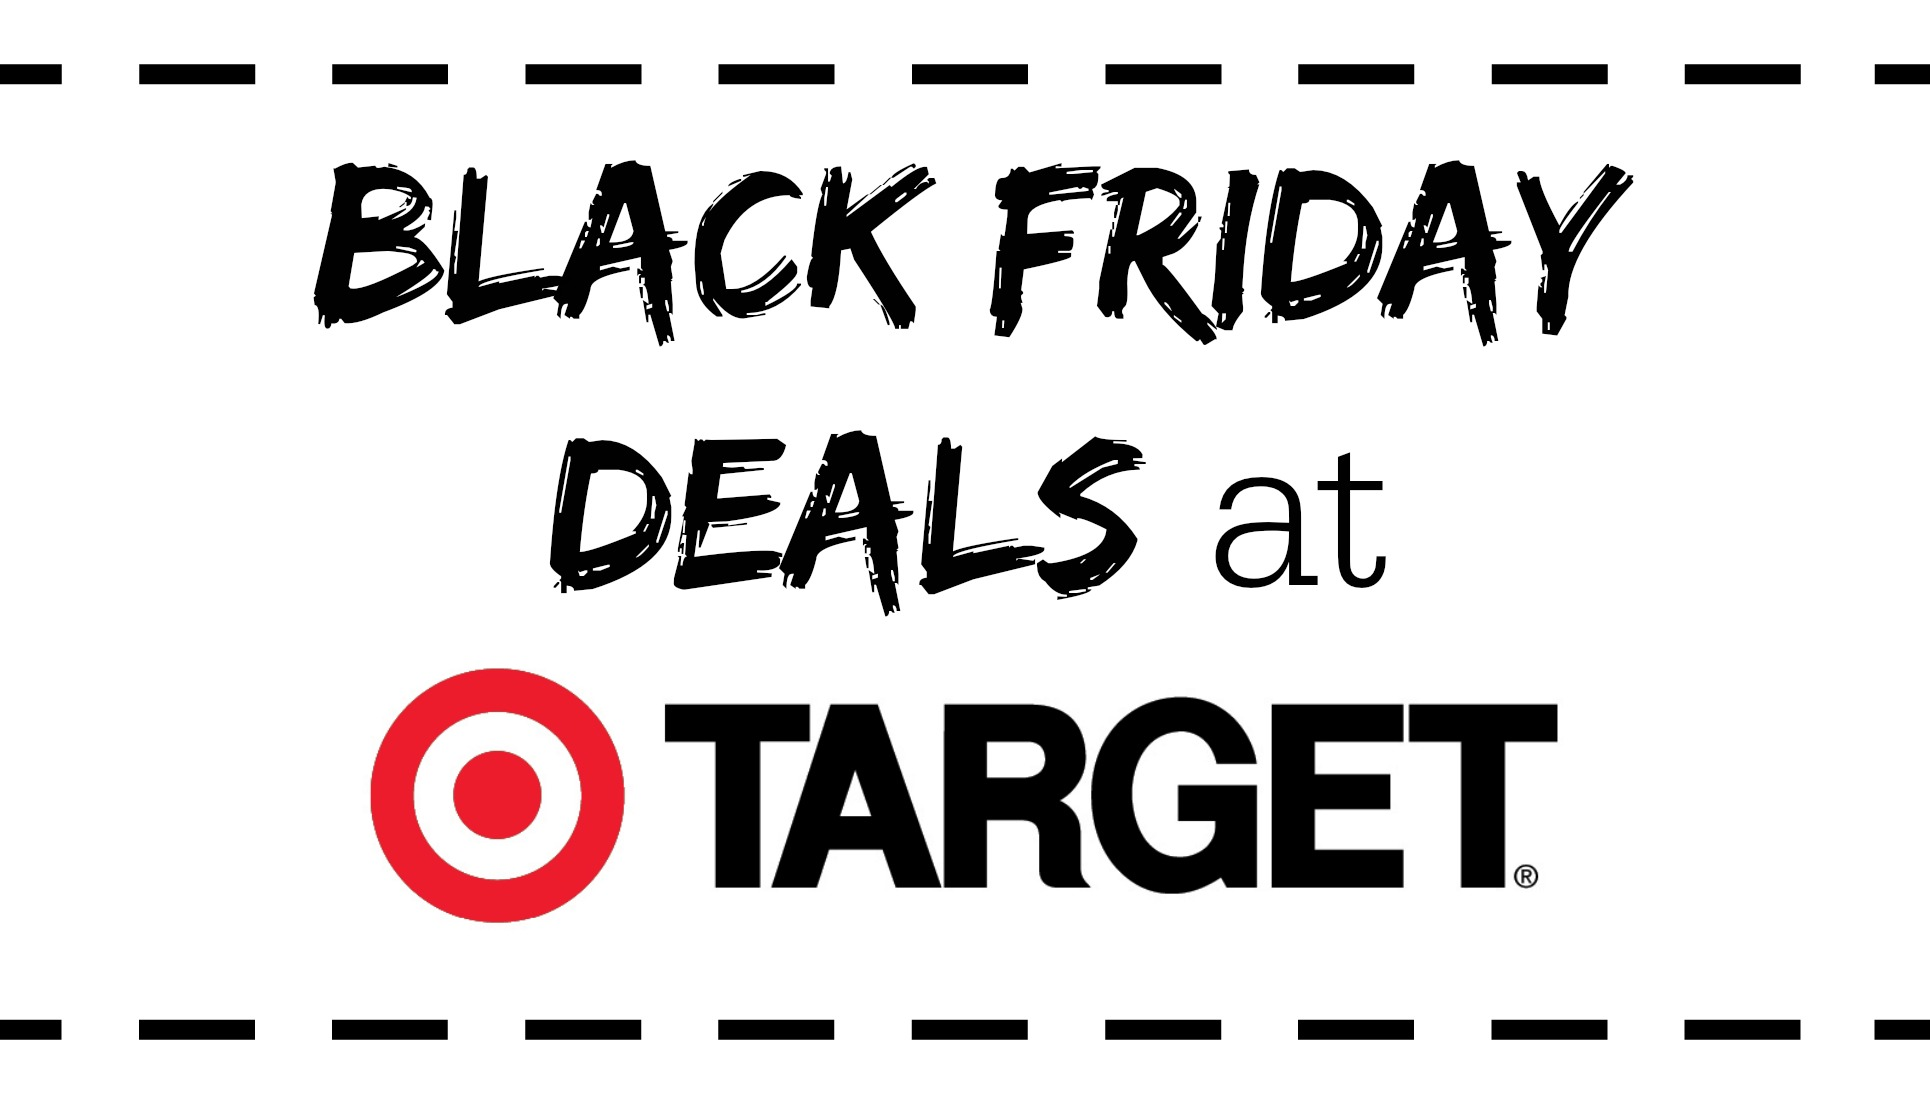 Black Friday Deals at Target